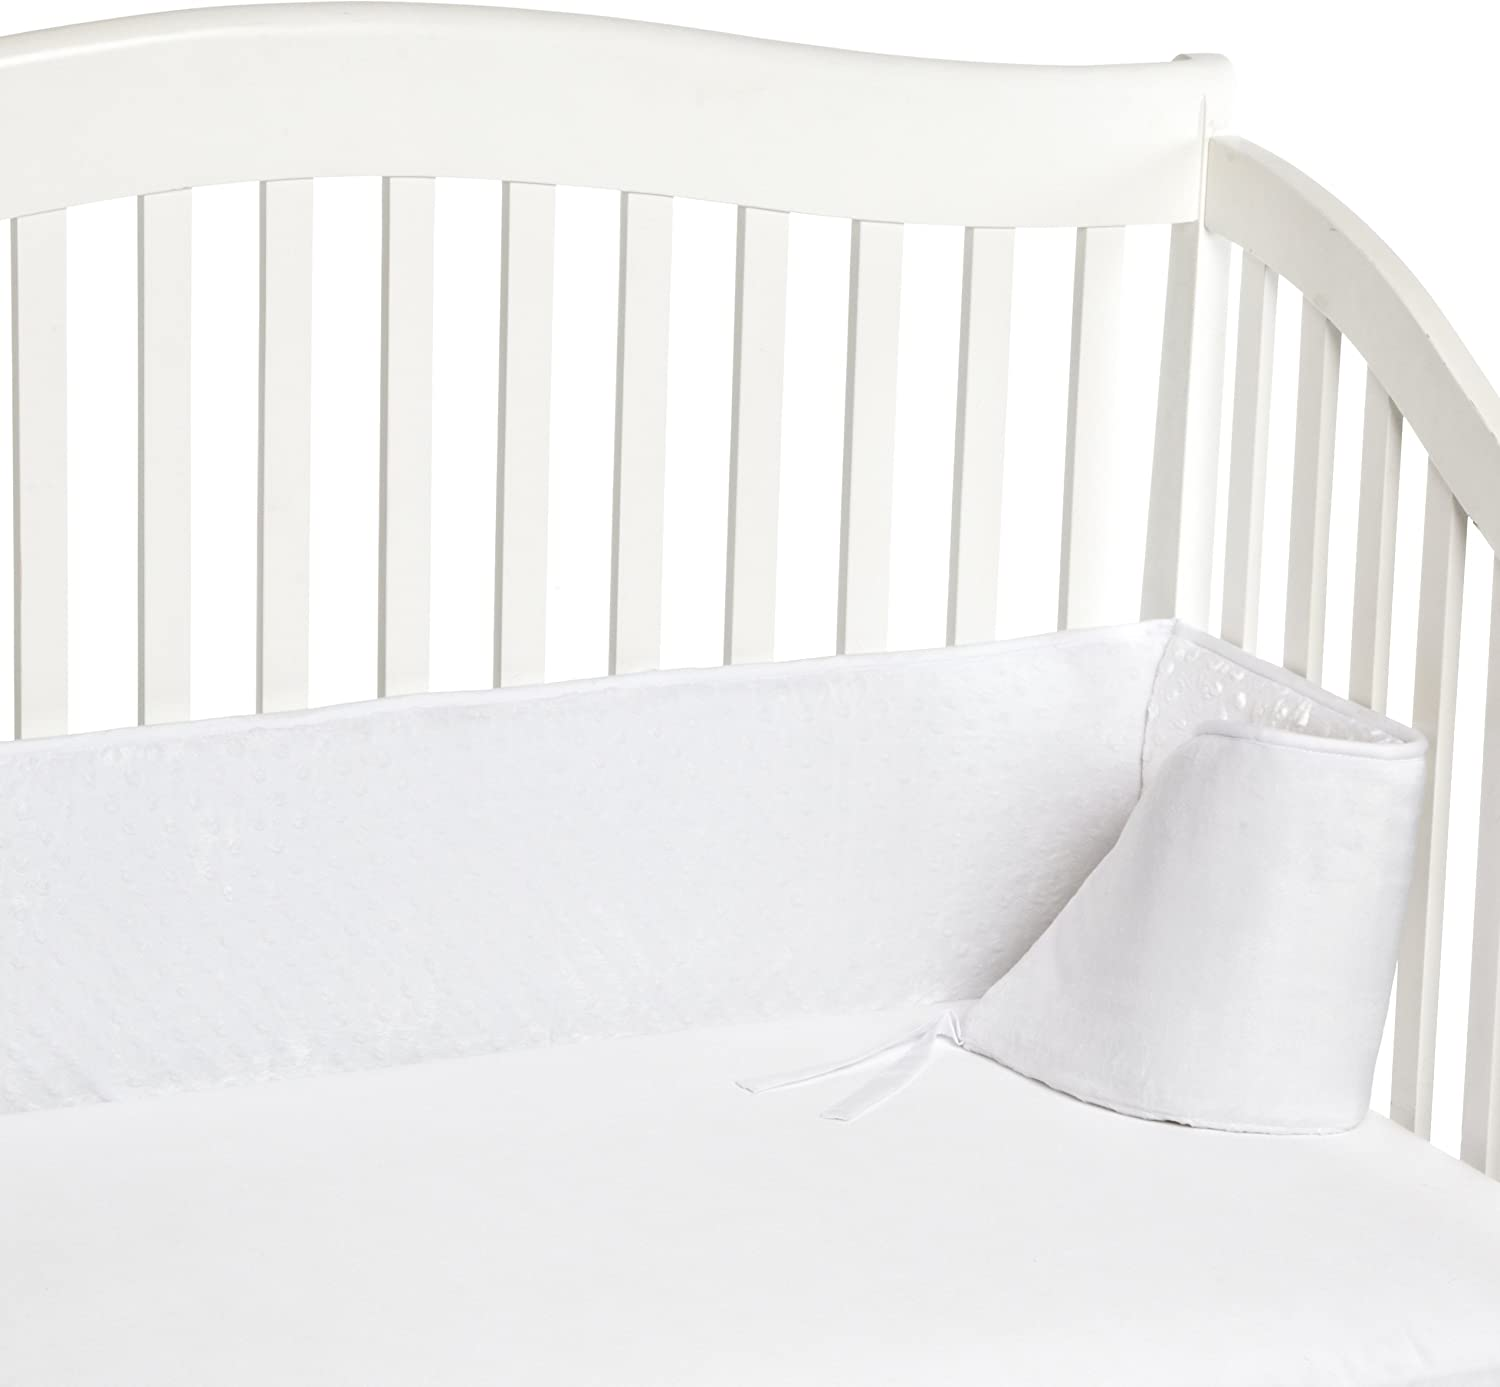 the mattress bedding cribs rail for baby bed mix bumper in protector child pads security cotton lot within cot crib product